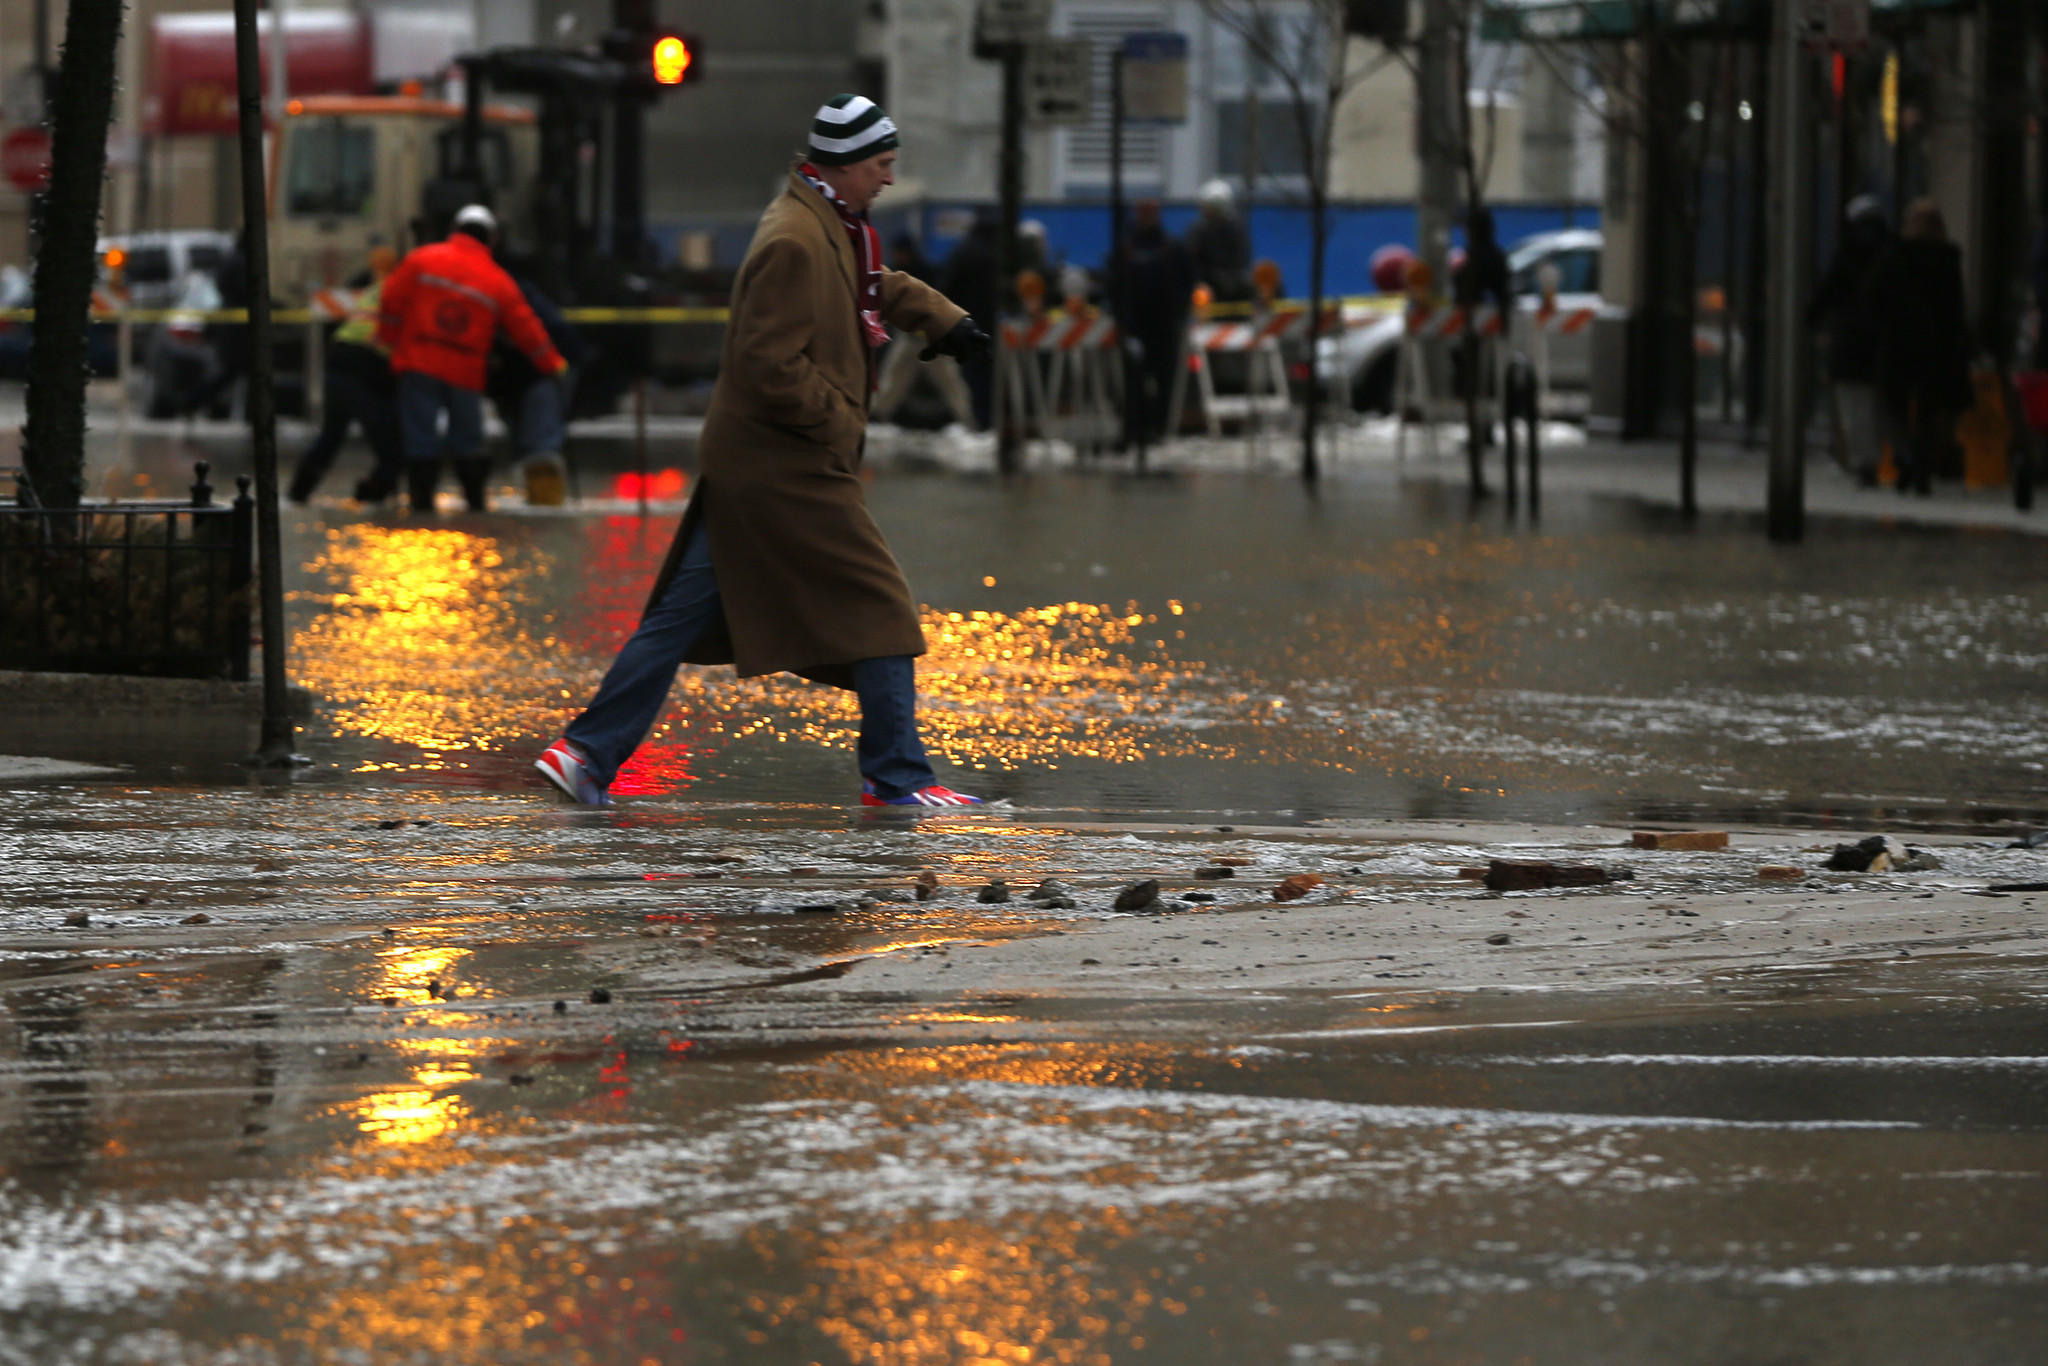 A pedestrian navigates a water main break at Ohio Street and McClurg Court in Chicago.